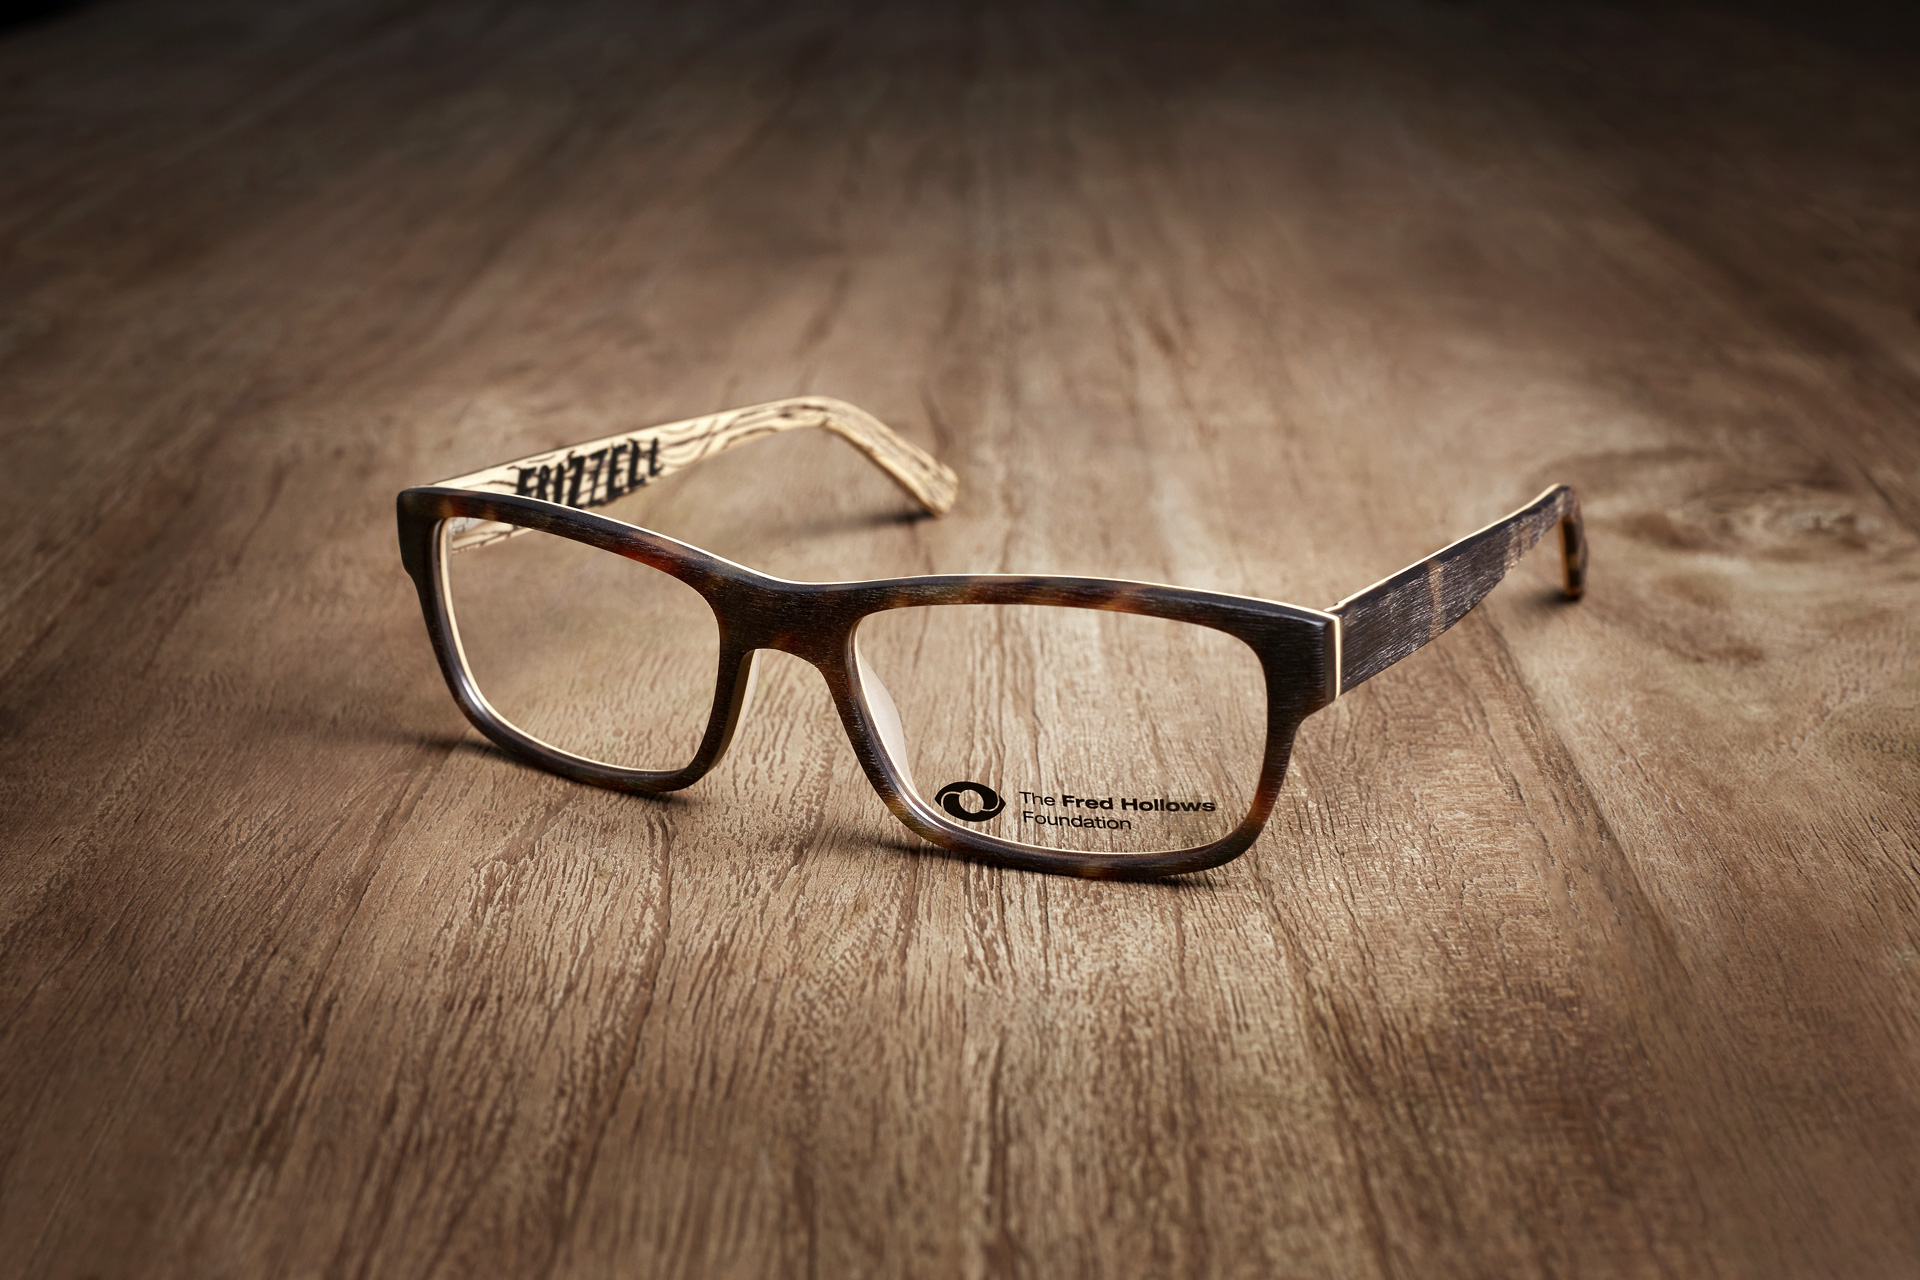 dick-frizzell-frame-2-sku-30473898_rrp-2-pairs-from-169